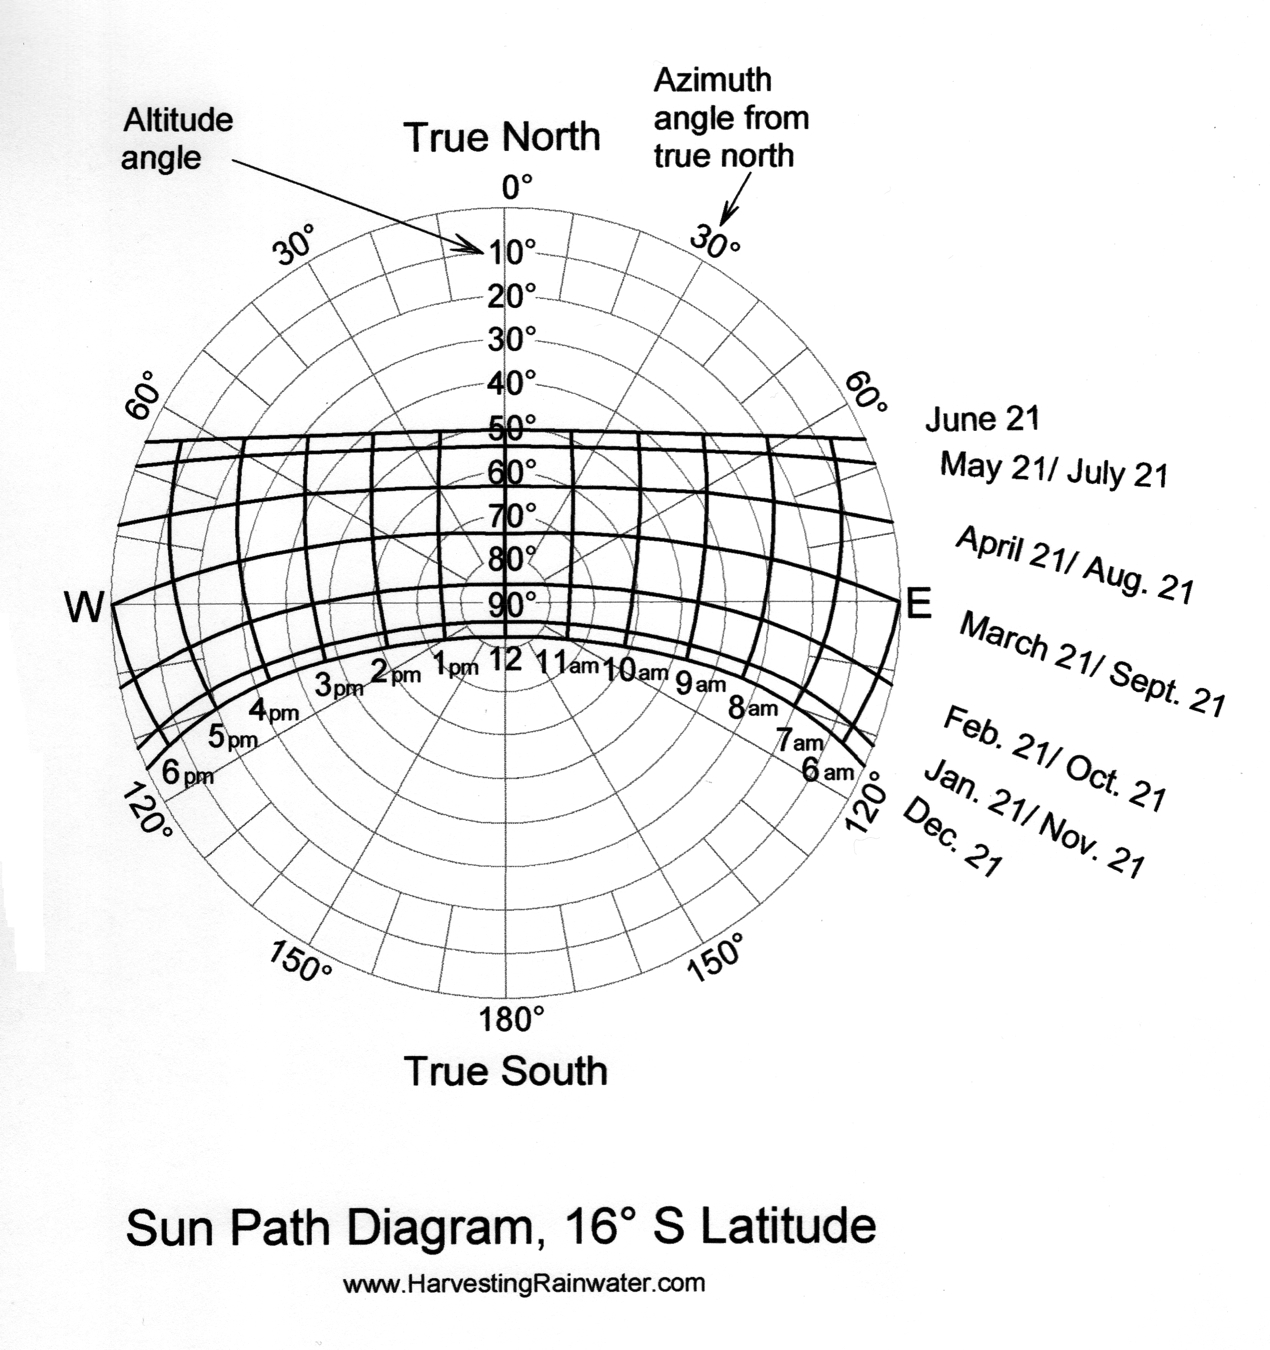 Sun Path Diagram 16o S Latitude